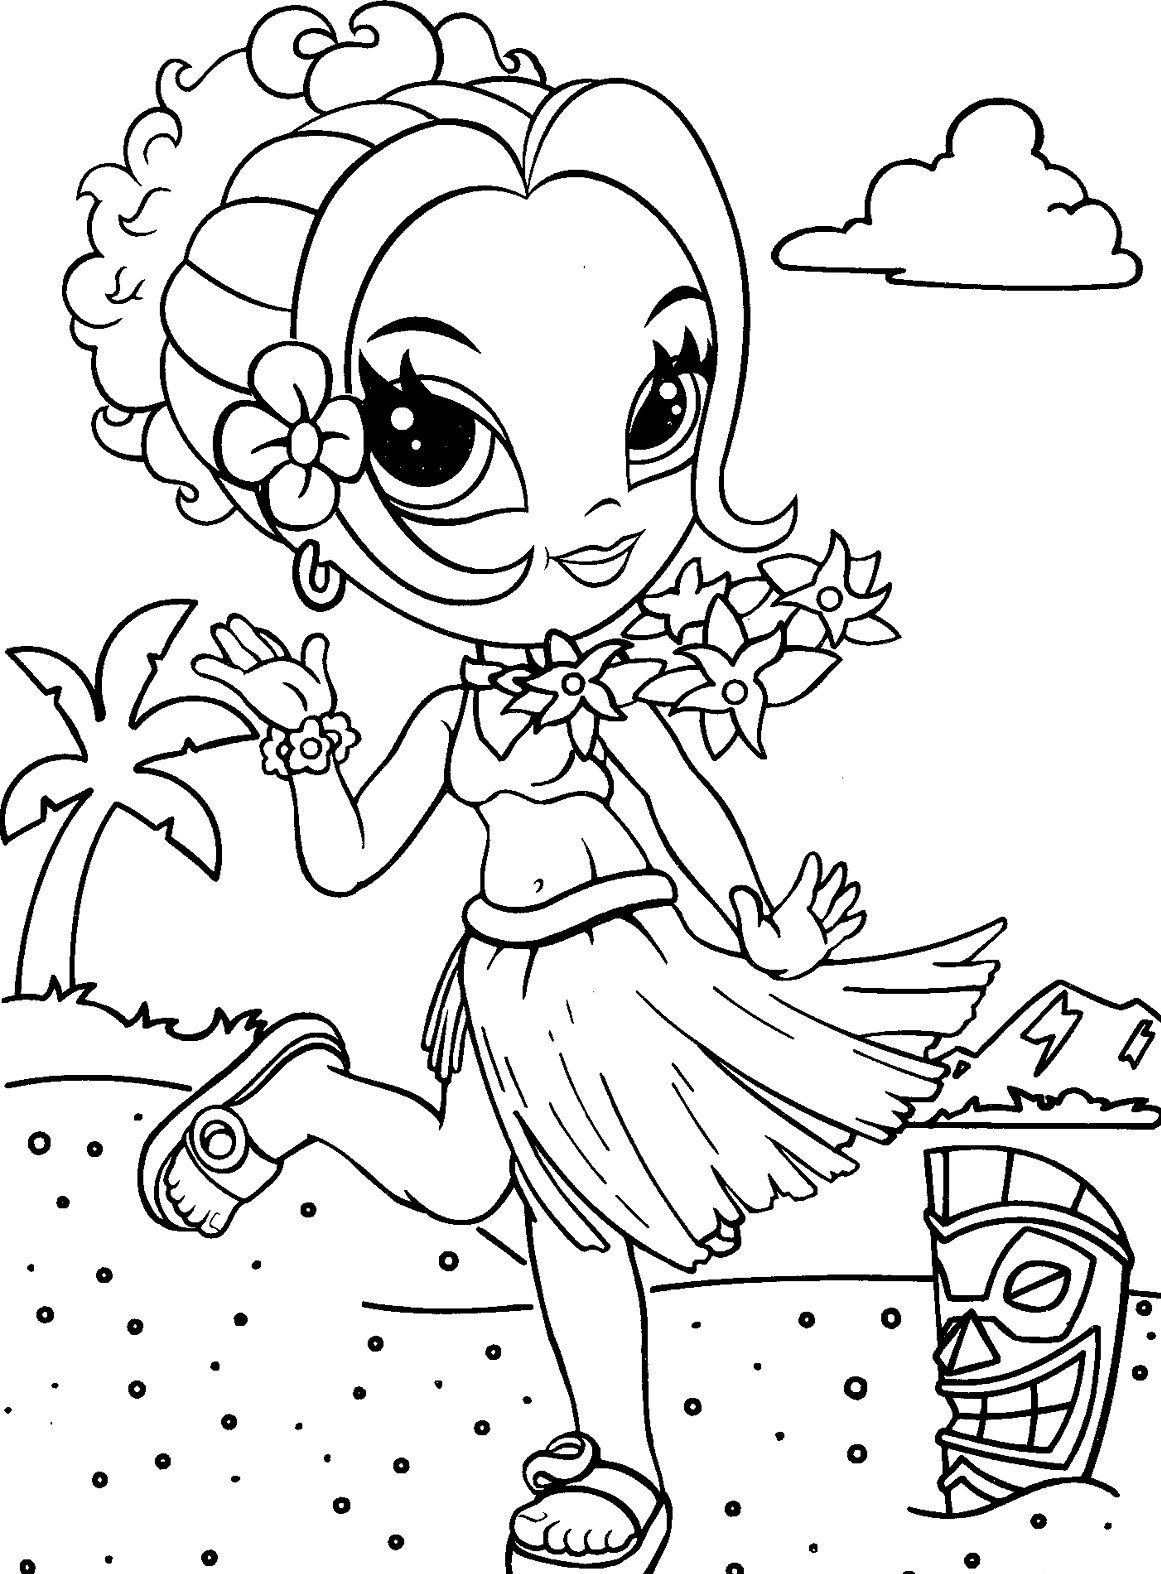 lisa frank coloring pages cats - photo#5